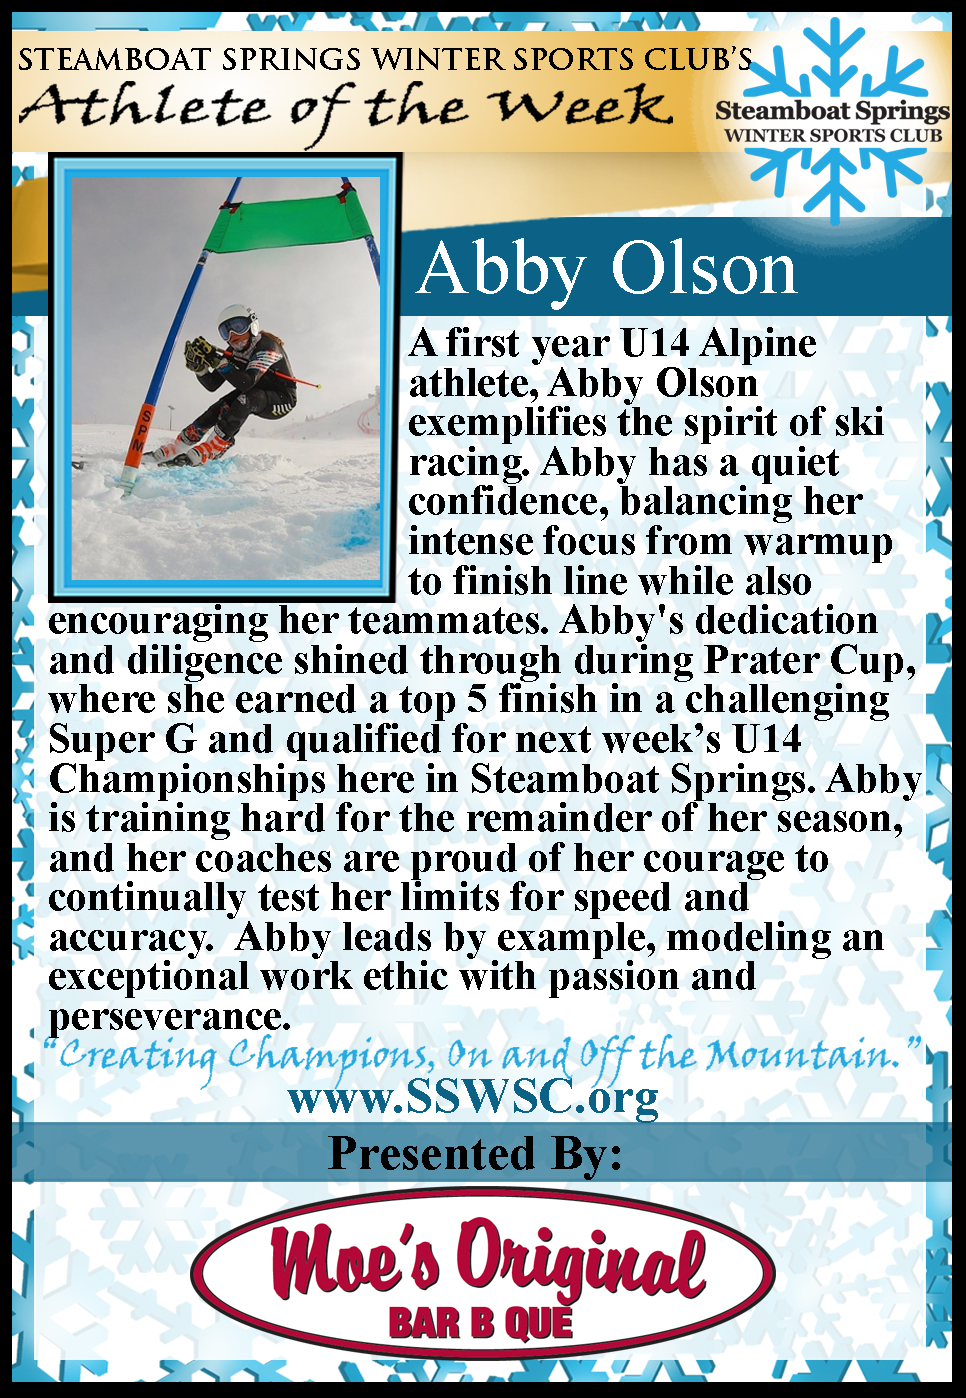 Athlete of the Week, Abby Olson